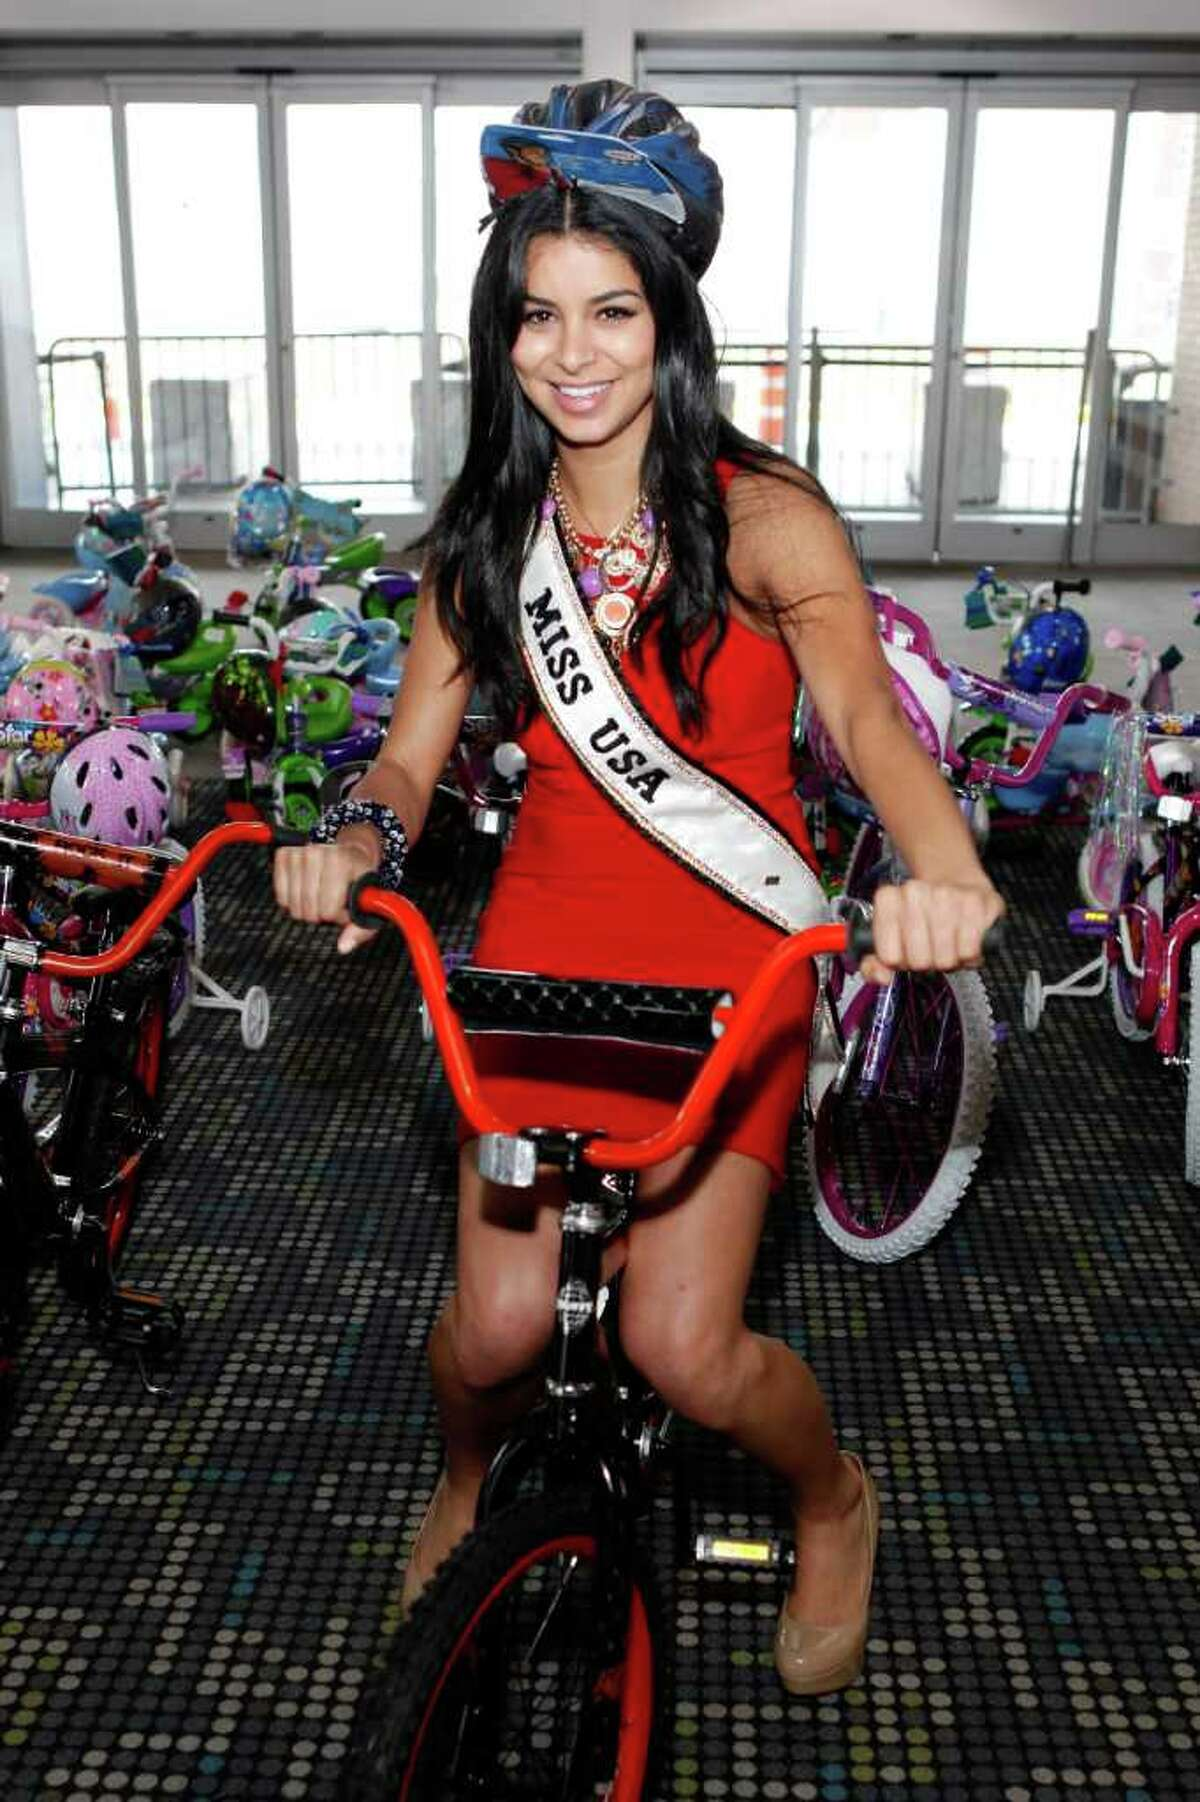 Miss USA Rima Fakih builds bikes for children at Pier 88 on May 26, 2011 in New York City.